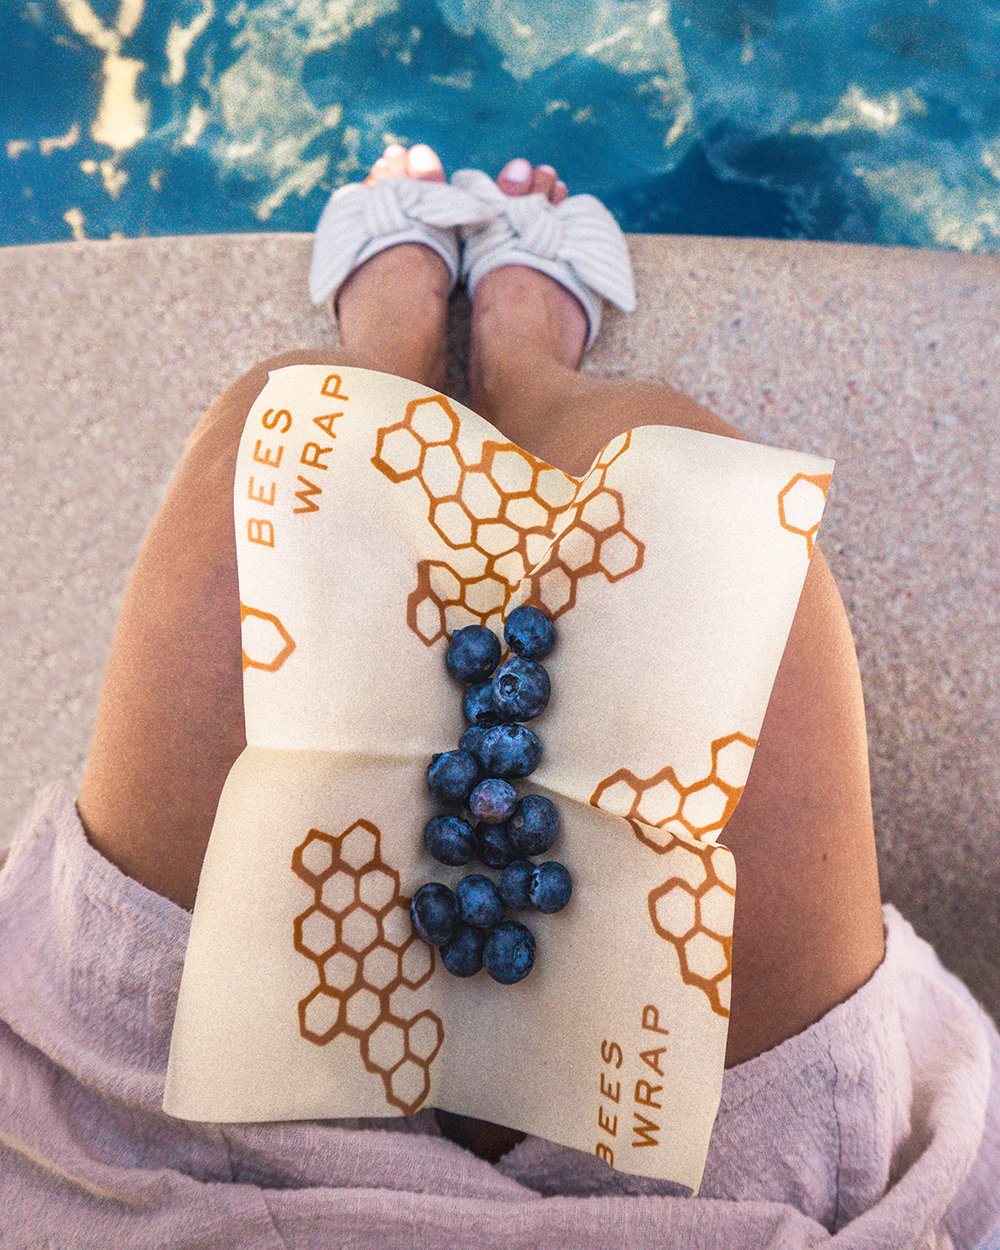 Bees Wrap with blueberries